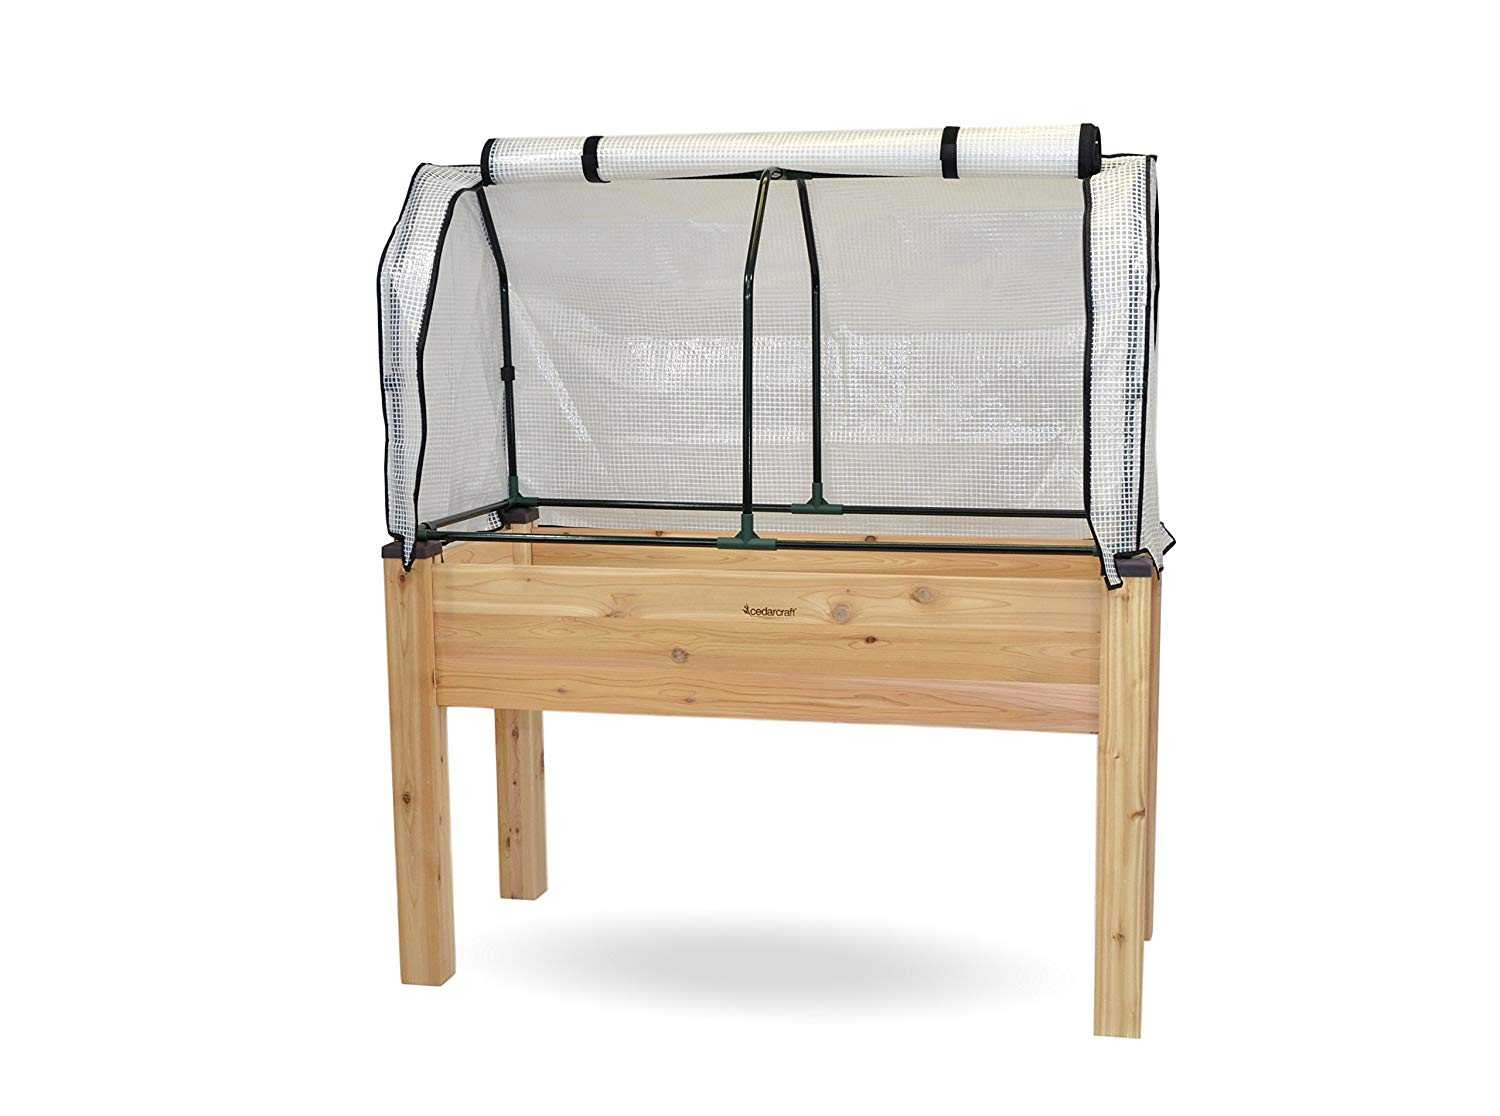 CedarCraft Self-Watering Elevated Cedar Planter 23x49x30 H With Greenhouse Cover - Complete raised garden kit to grow vegetables, herbs, flowers & succulents. Greenhouse extends growing season, prot